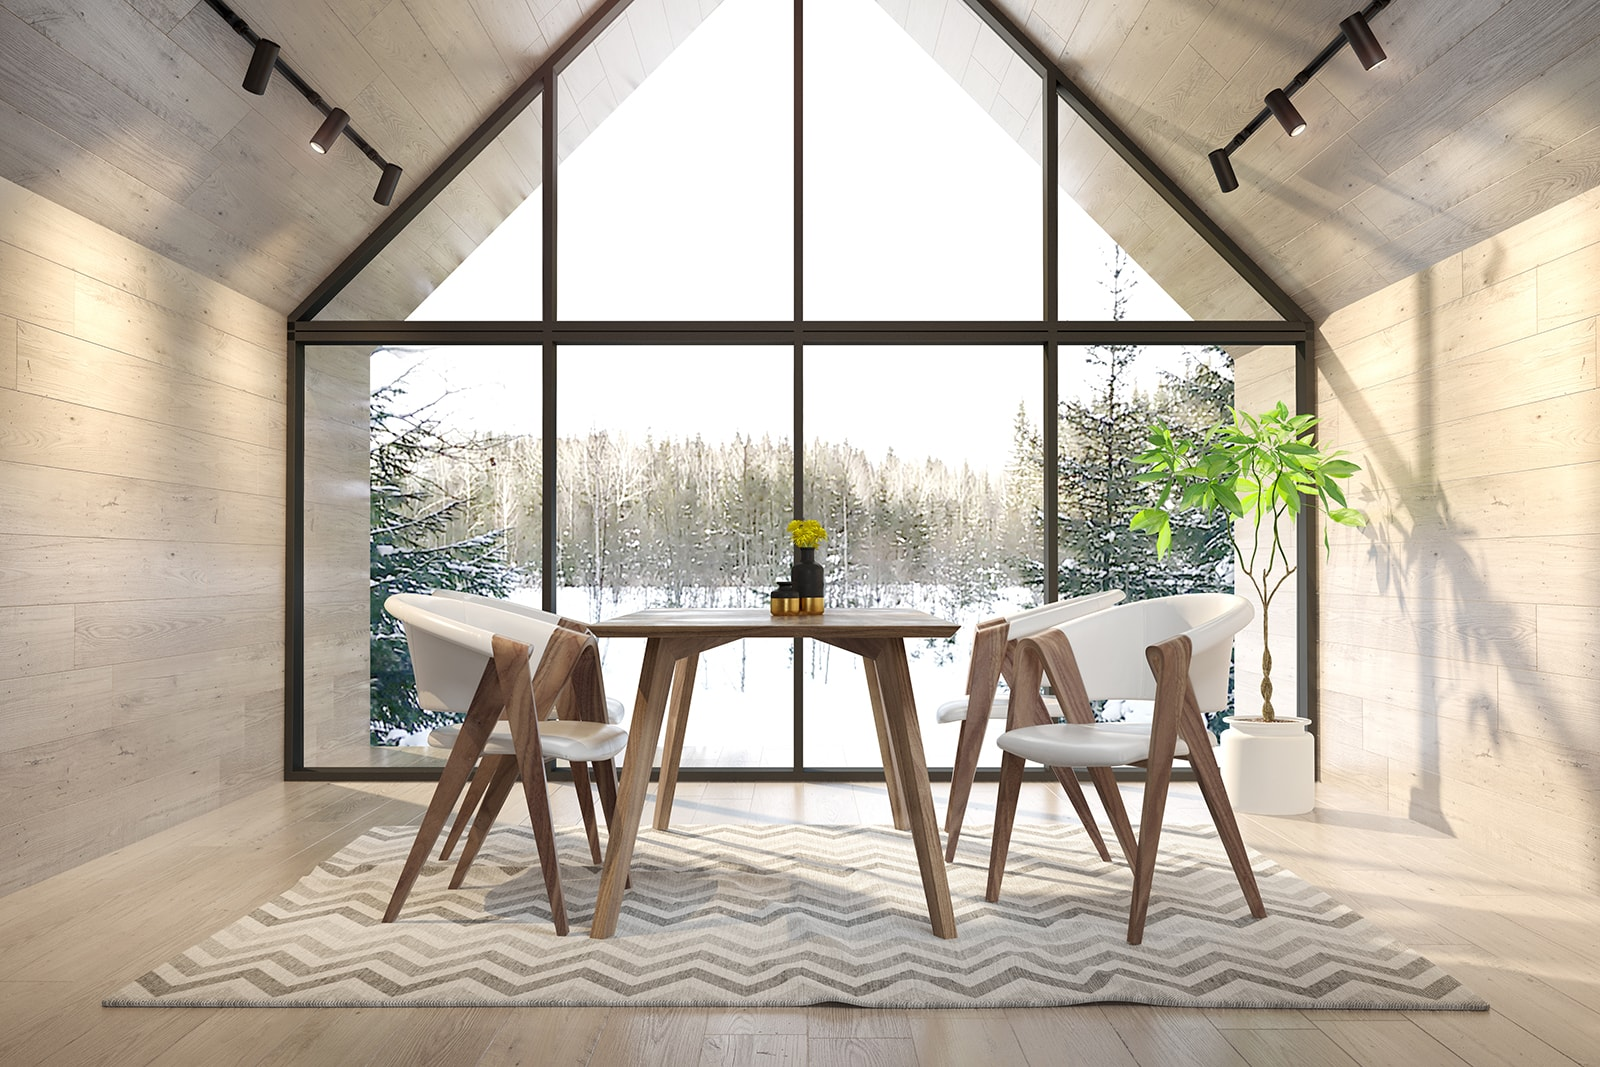 interior-living-room-of-a-forest-house-3d-VMHWWGH-min